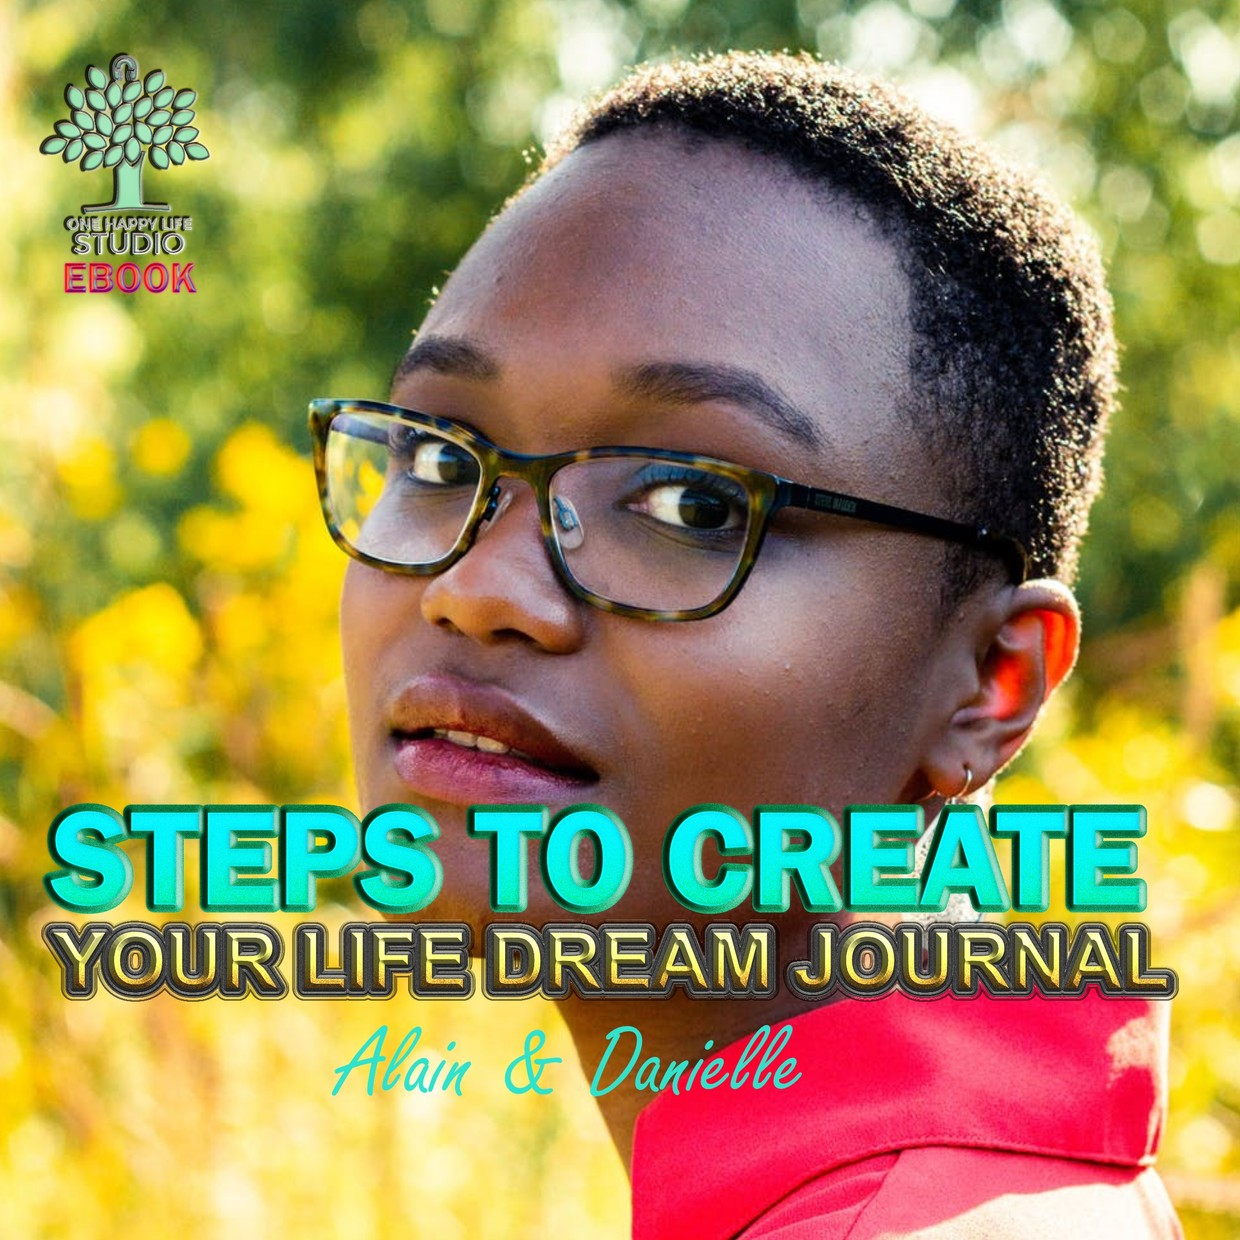 Step To Your Life Dream Journal - Free eBook Preview